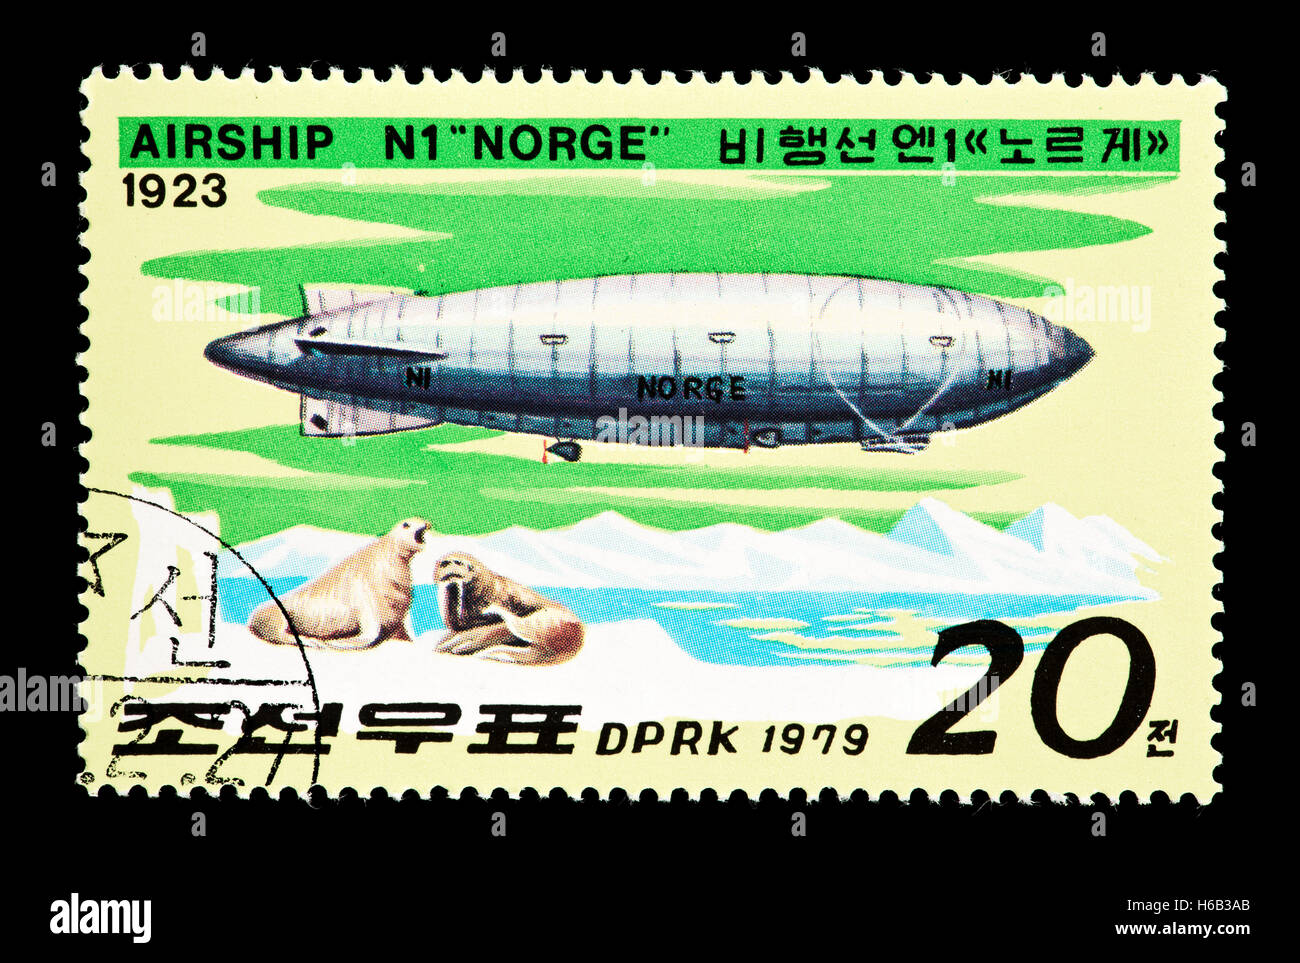 Postage Stamp From North Korea Depicting The Airship Norge First Flight Over Pole